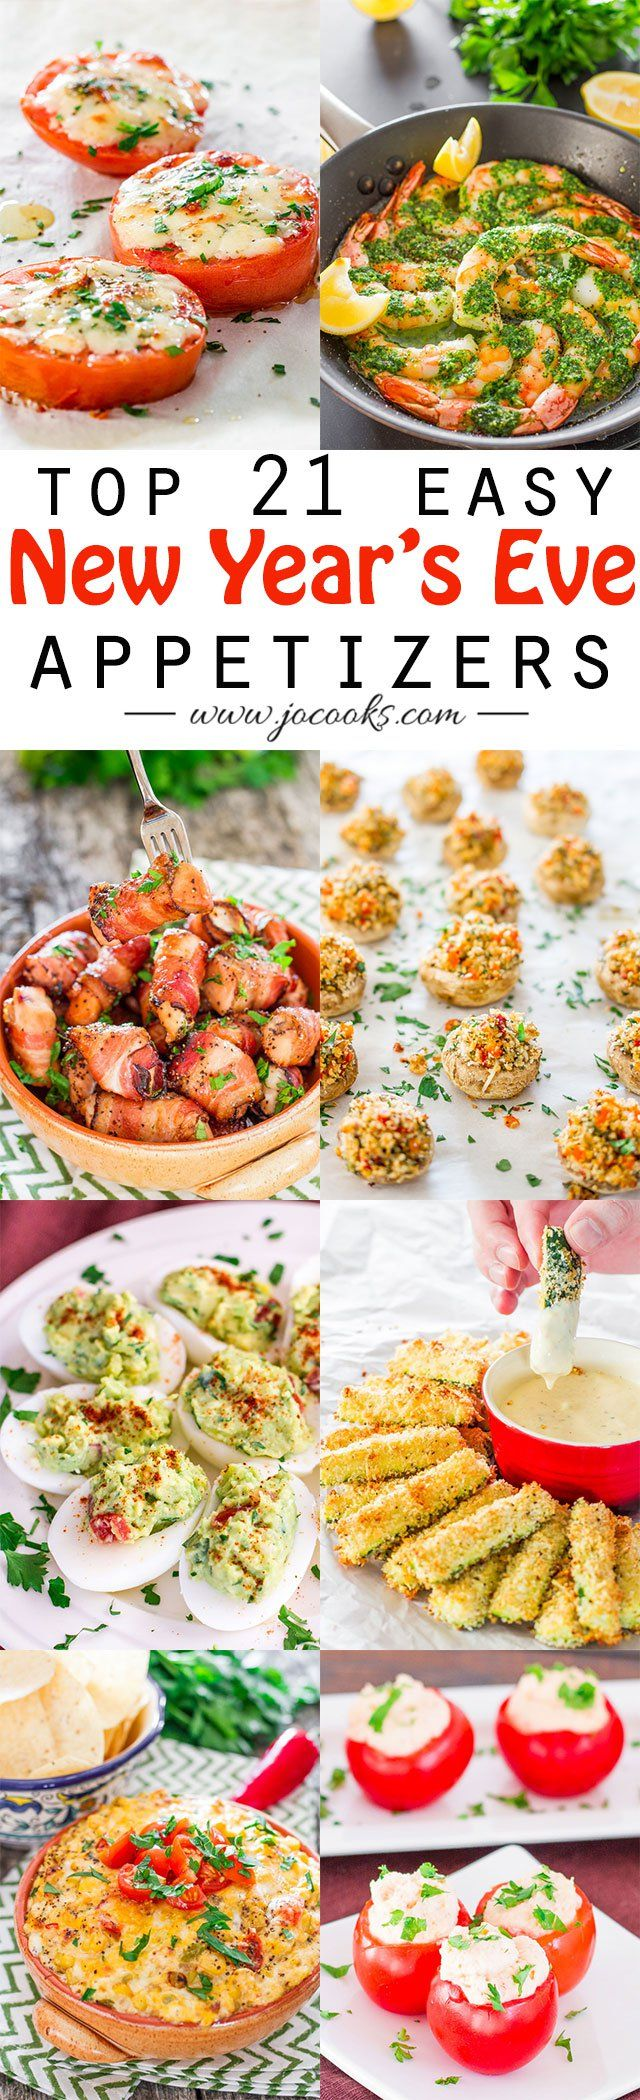 21 top easy new years eve appetizers appetizers pinterest 21 top easy new years eve appetizers appetizers pinterest 21st easy and food forumfinder Images